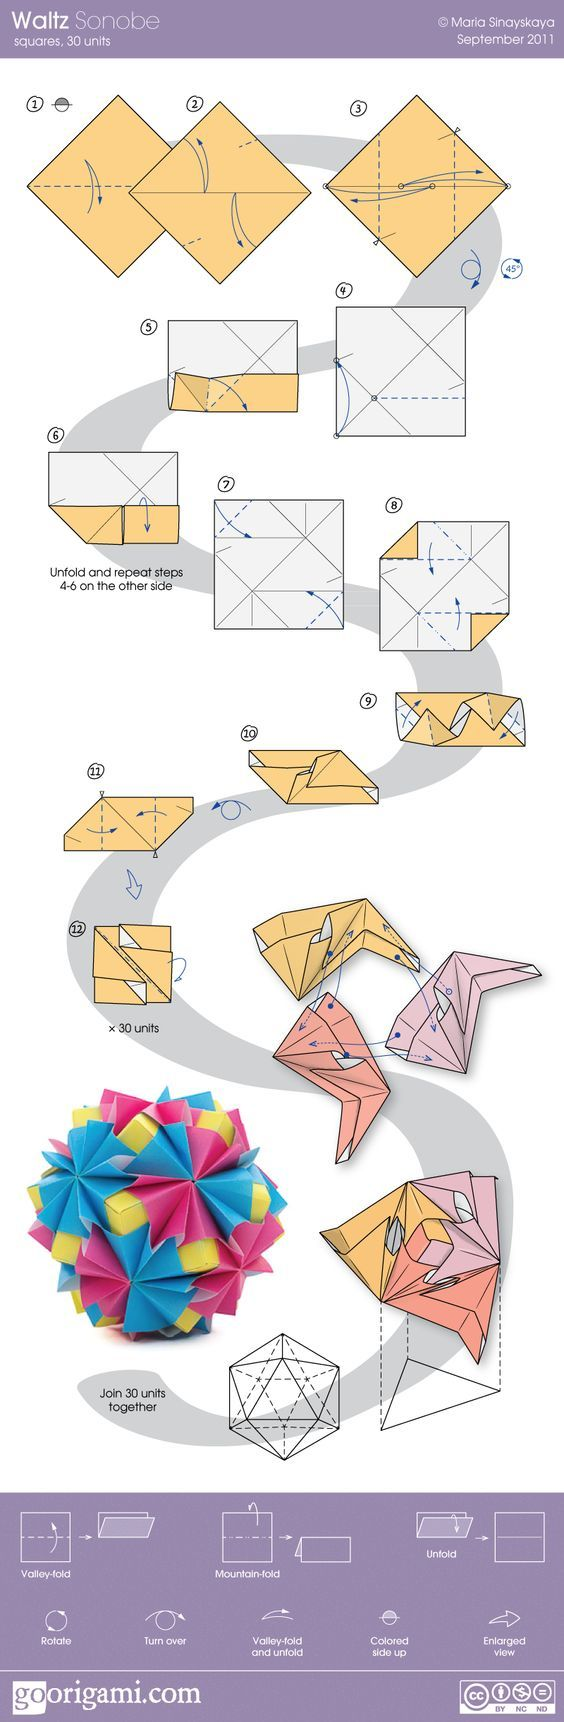 29 Best Origami Images On Pinterest Paper Crafts Papercraft And 3d Swan Diagram Http Howtoorigamicom Origamiswanhtml For A Modular Ball Kusudama Waltz Sonobe Designed By Maria Sinayskaya Folded With 30 Square Sheets Of Assembled Without Glue